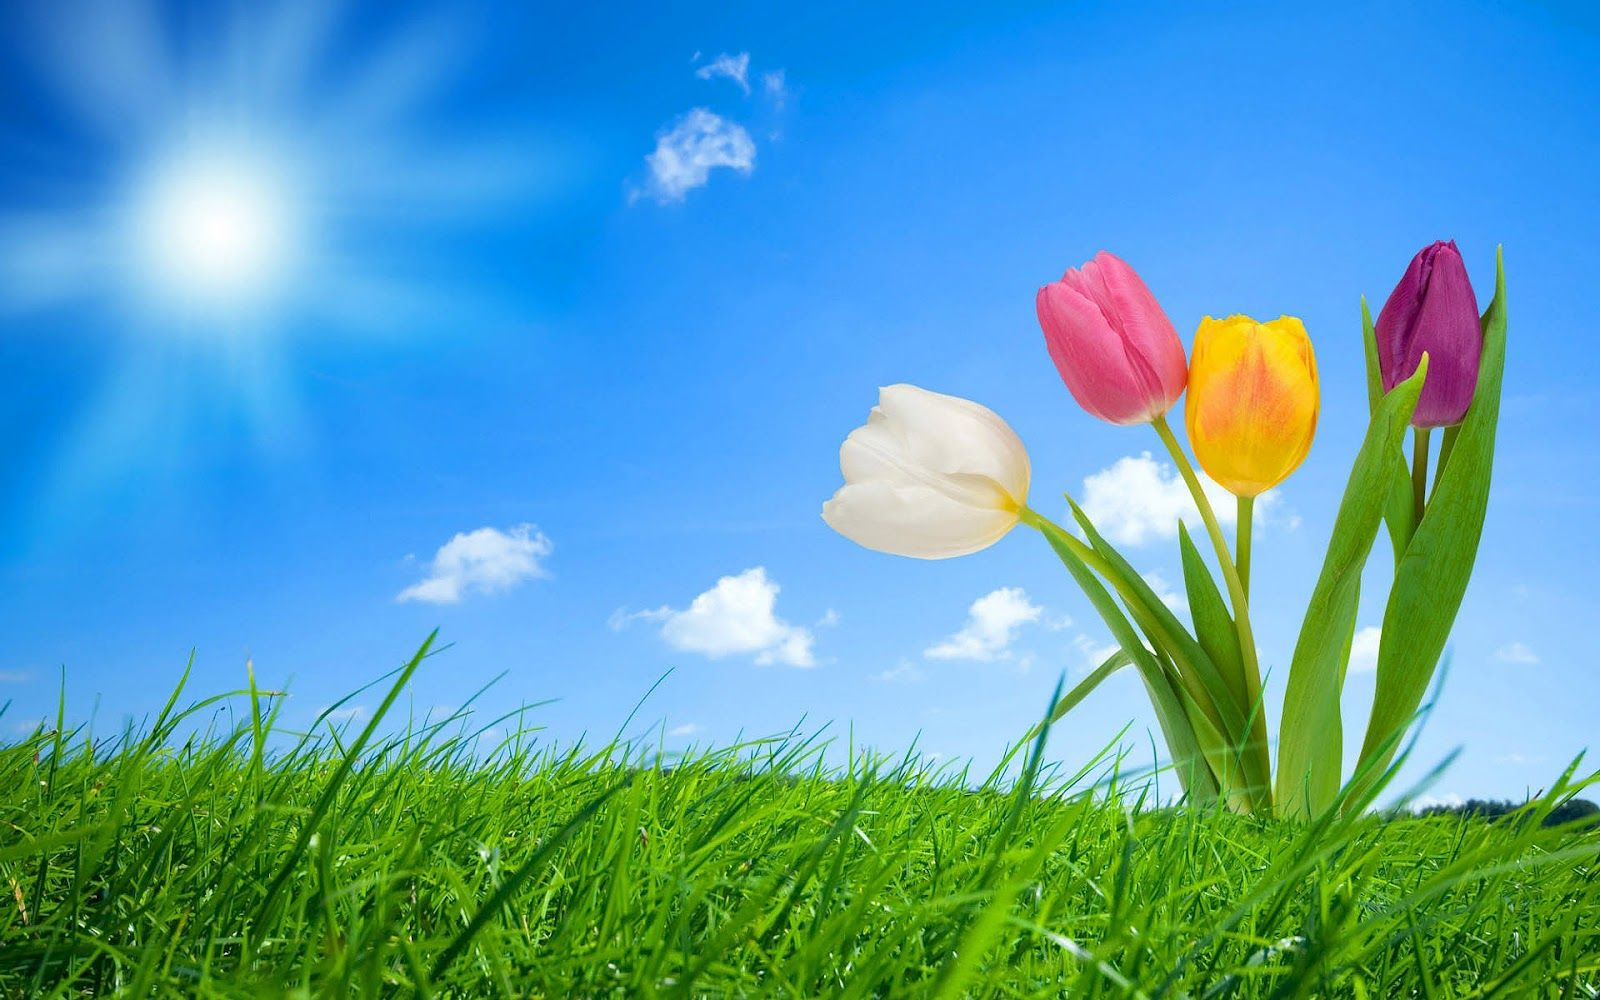 Spring Hd Wallpapers Backgrounds With Images Spring Wallpaper